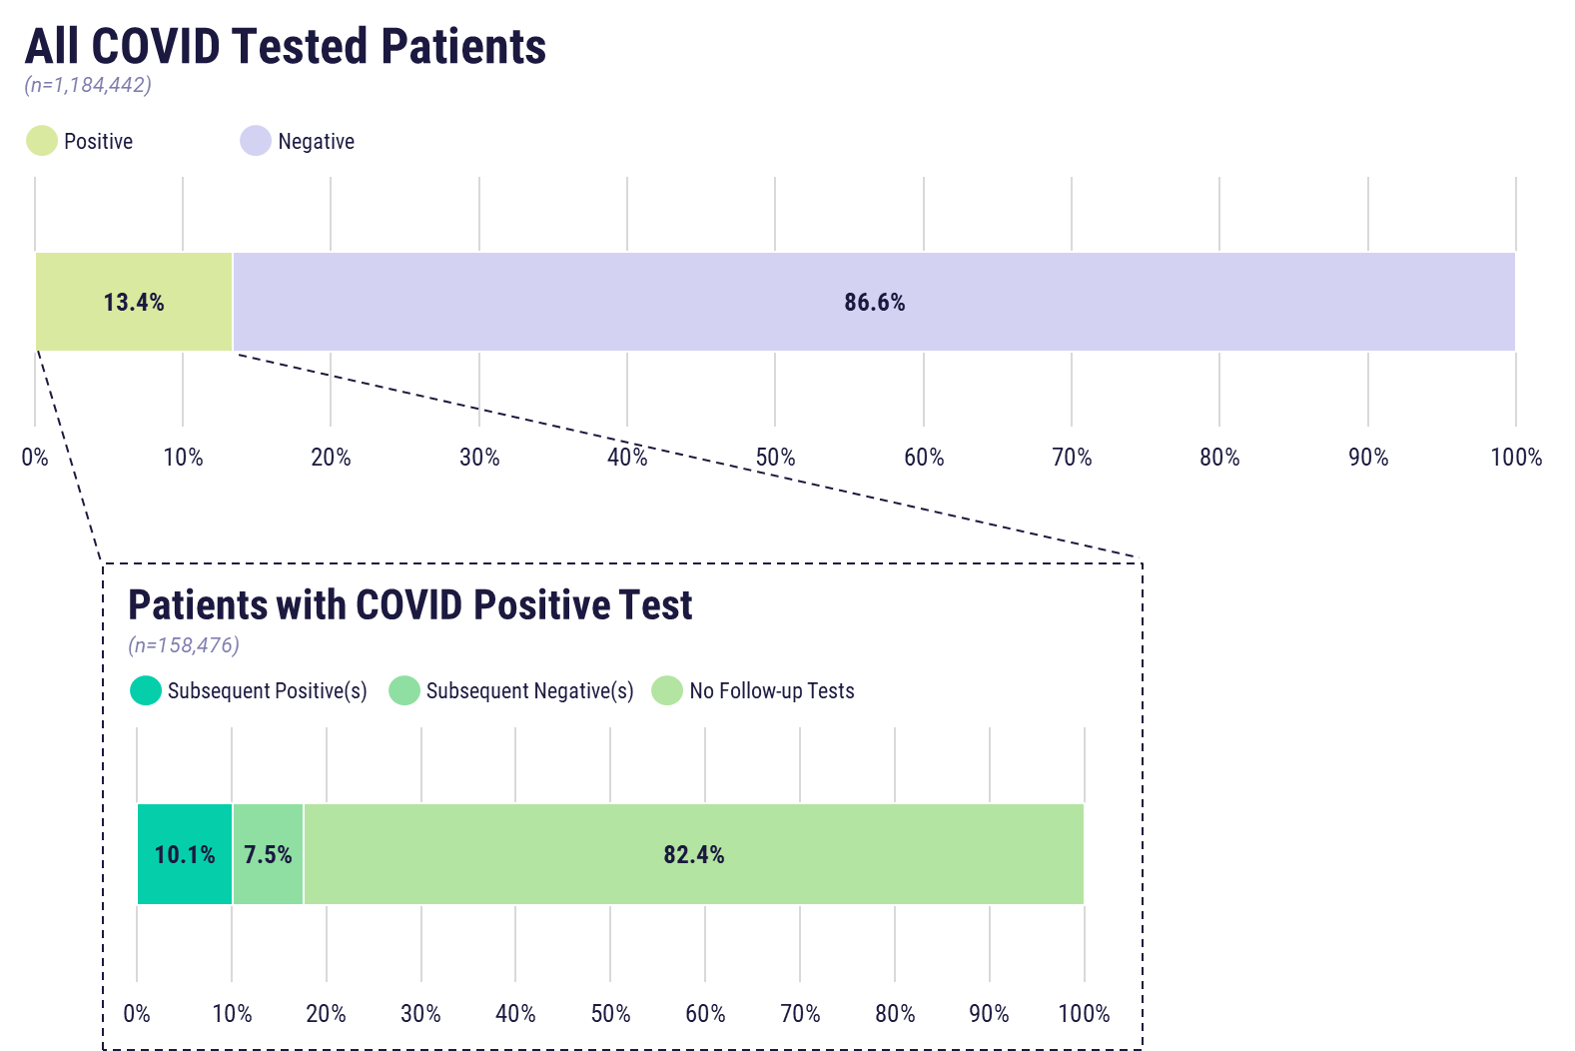 Figure 1. COVID-19 tested patients, by test result. Callout graph shows subsequent testing information for patients who tested positive for COVID-19.